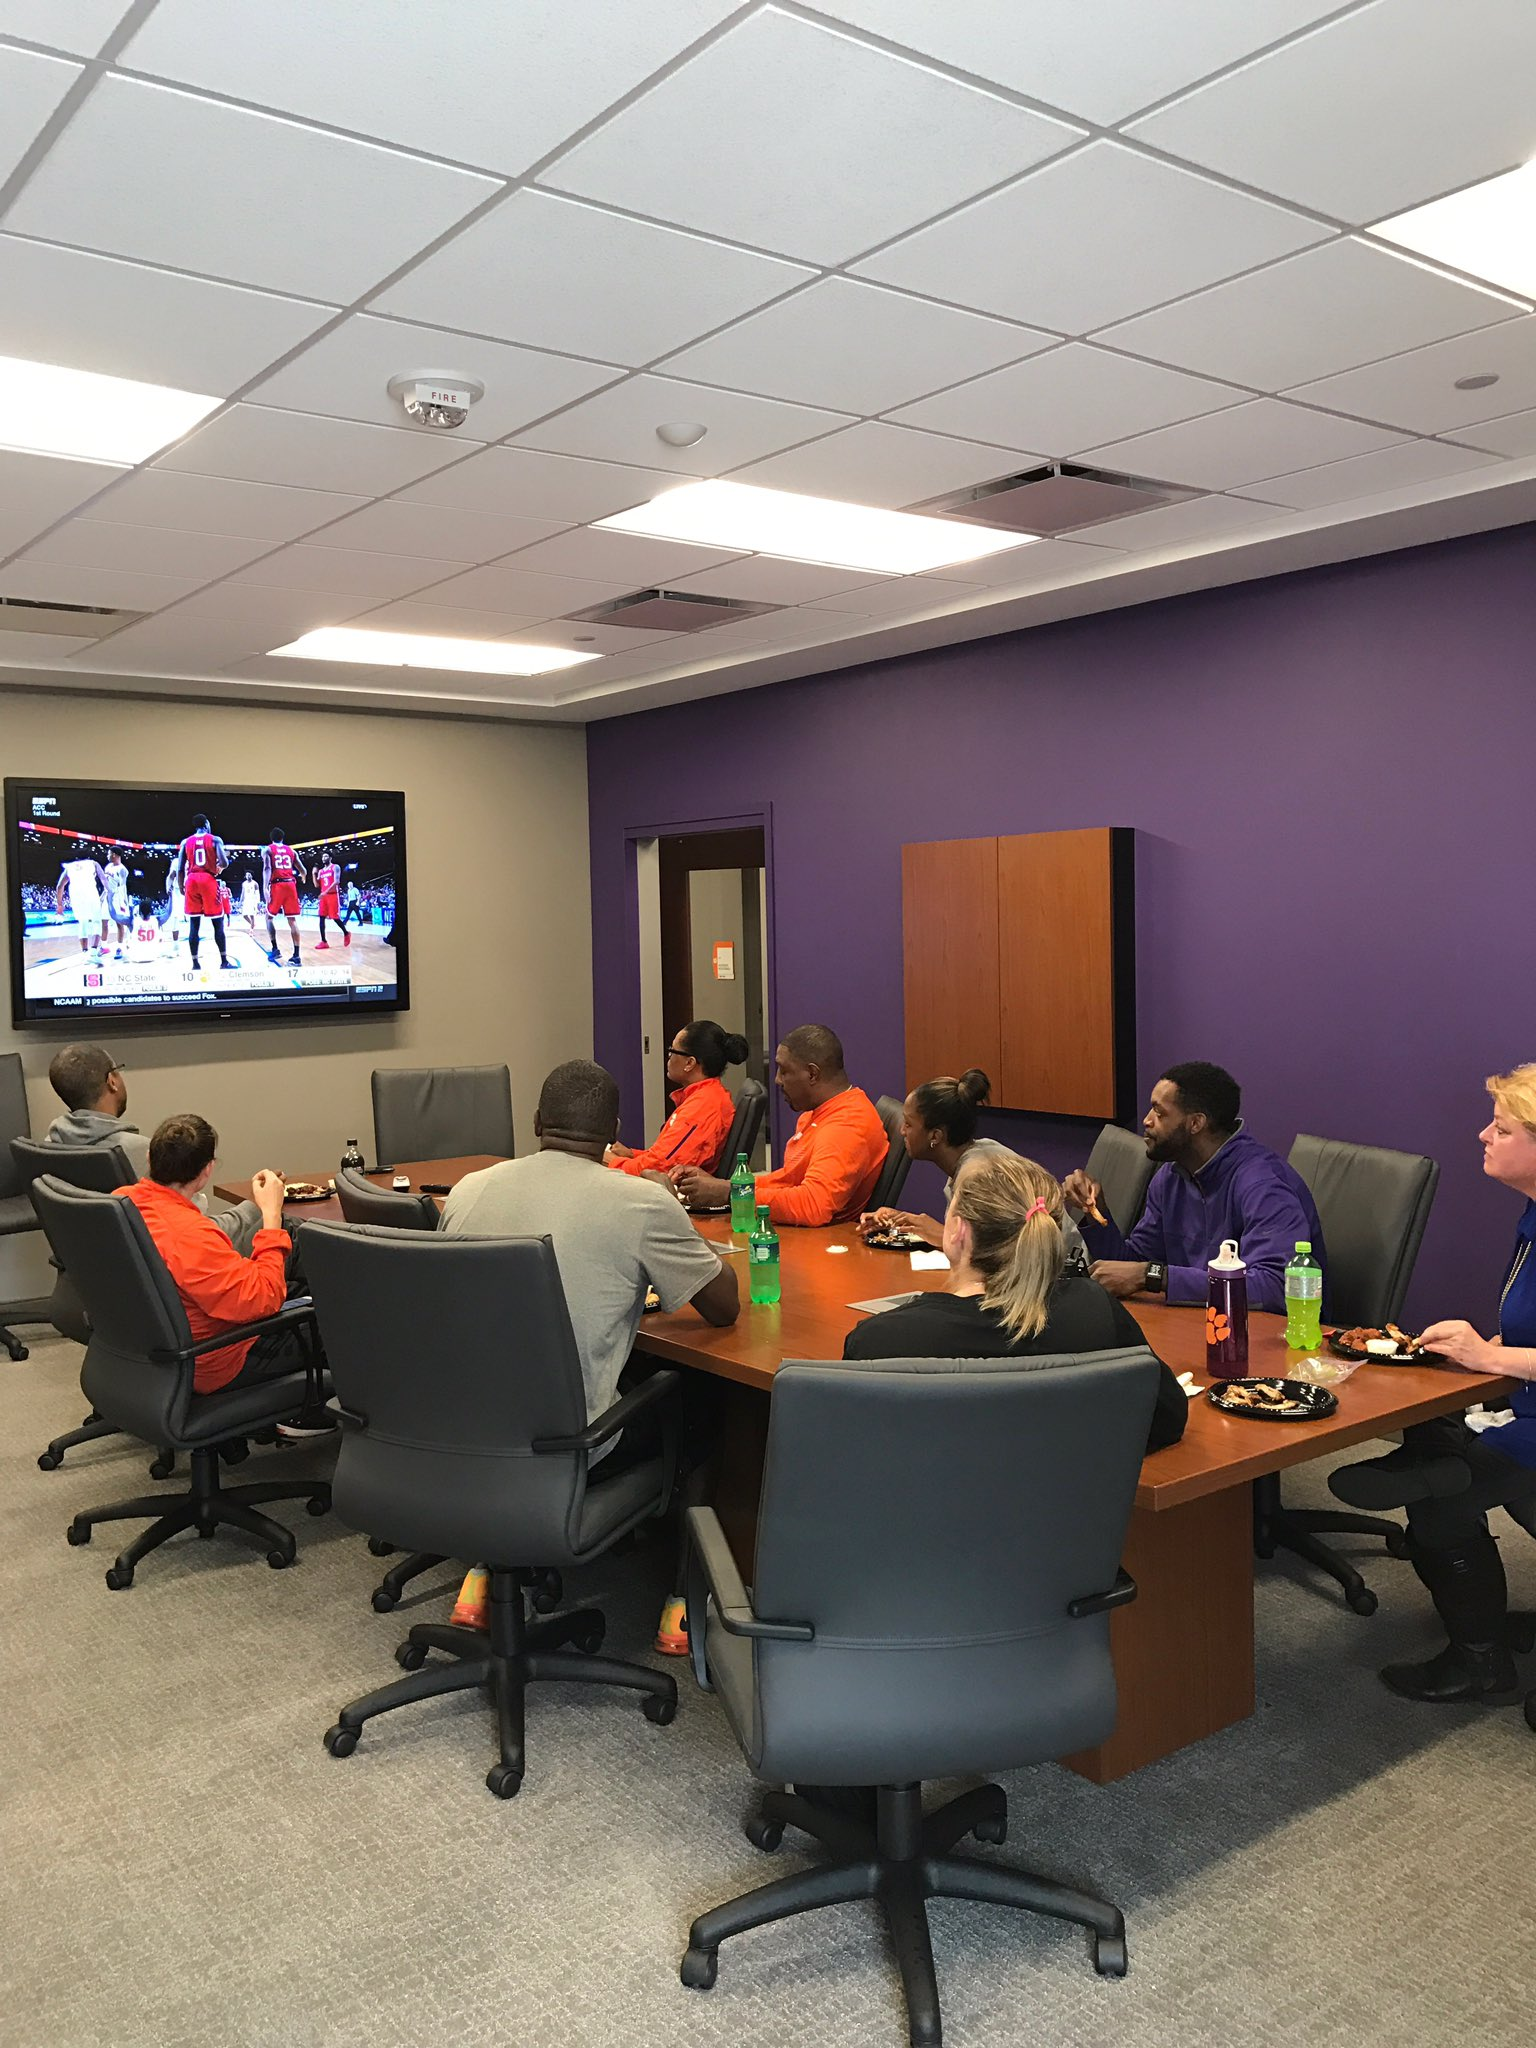 Supporting @ClemsonMBB! Let's go Tigers! https://t.co/1juuAX4Zpf